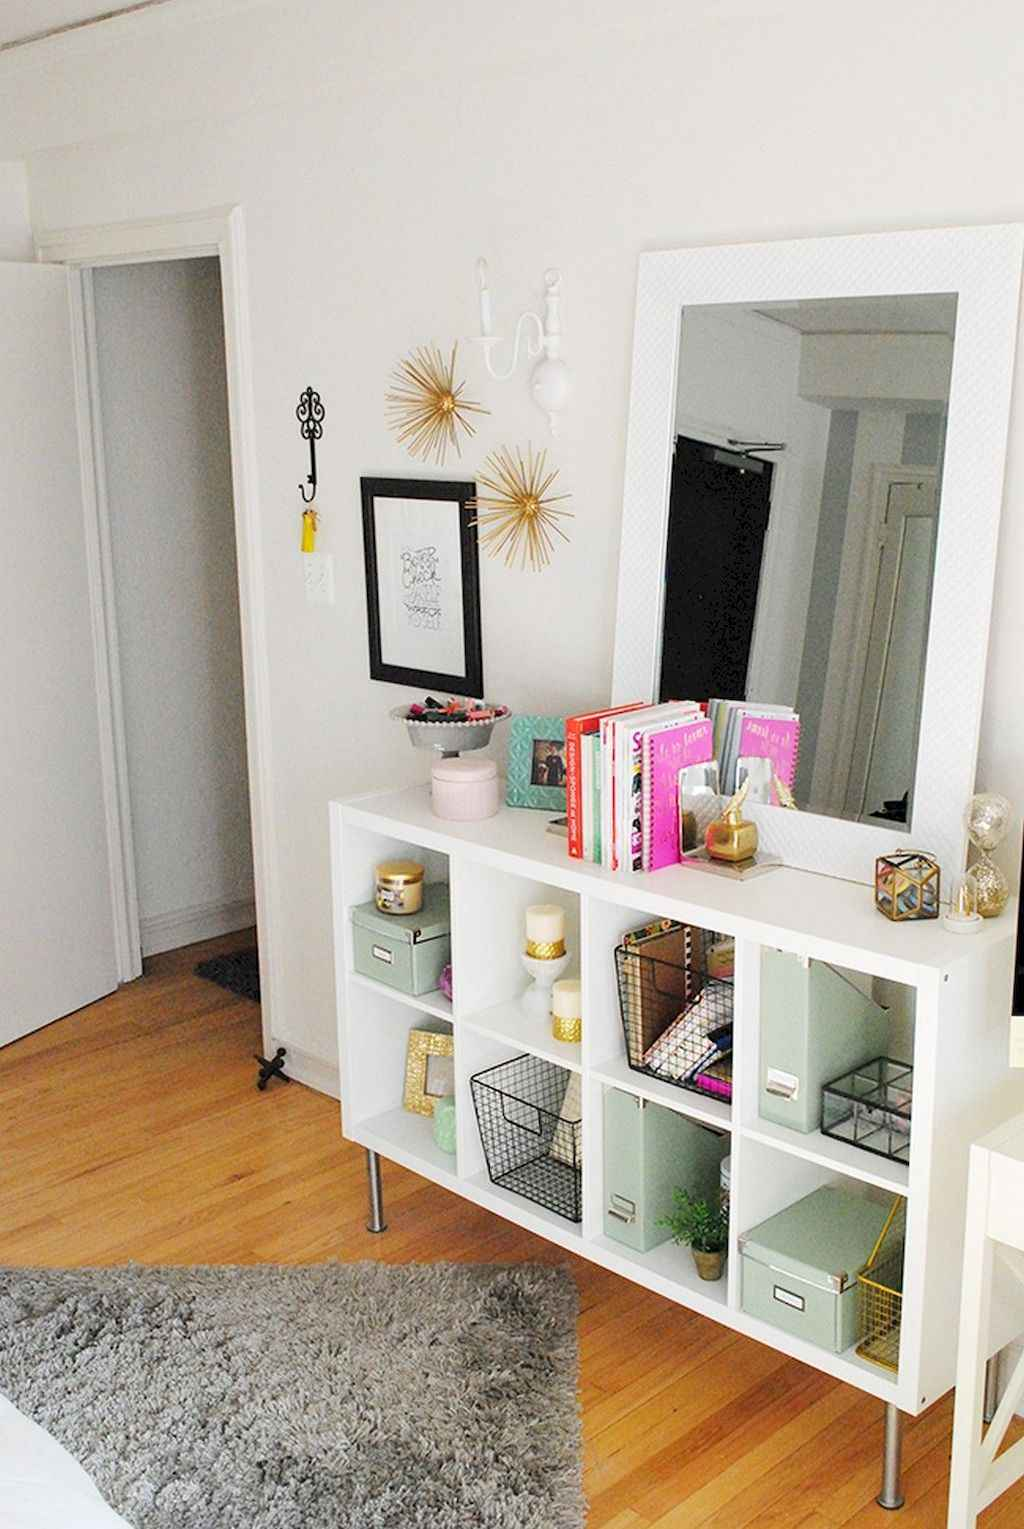 Amazing small first apartment decorating ideas (19)